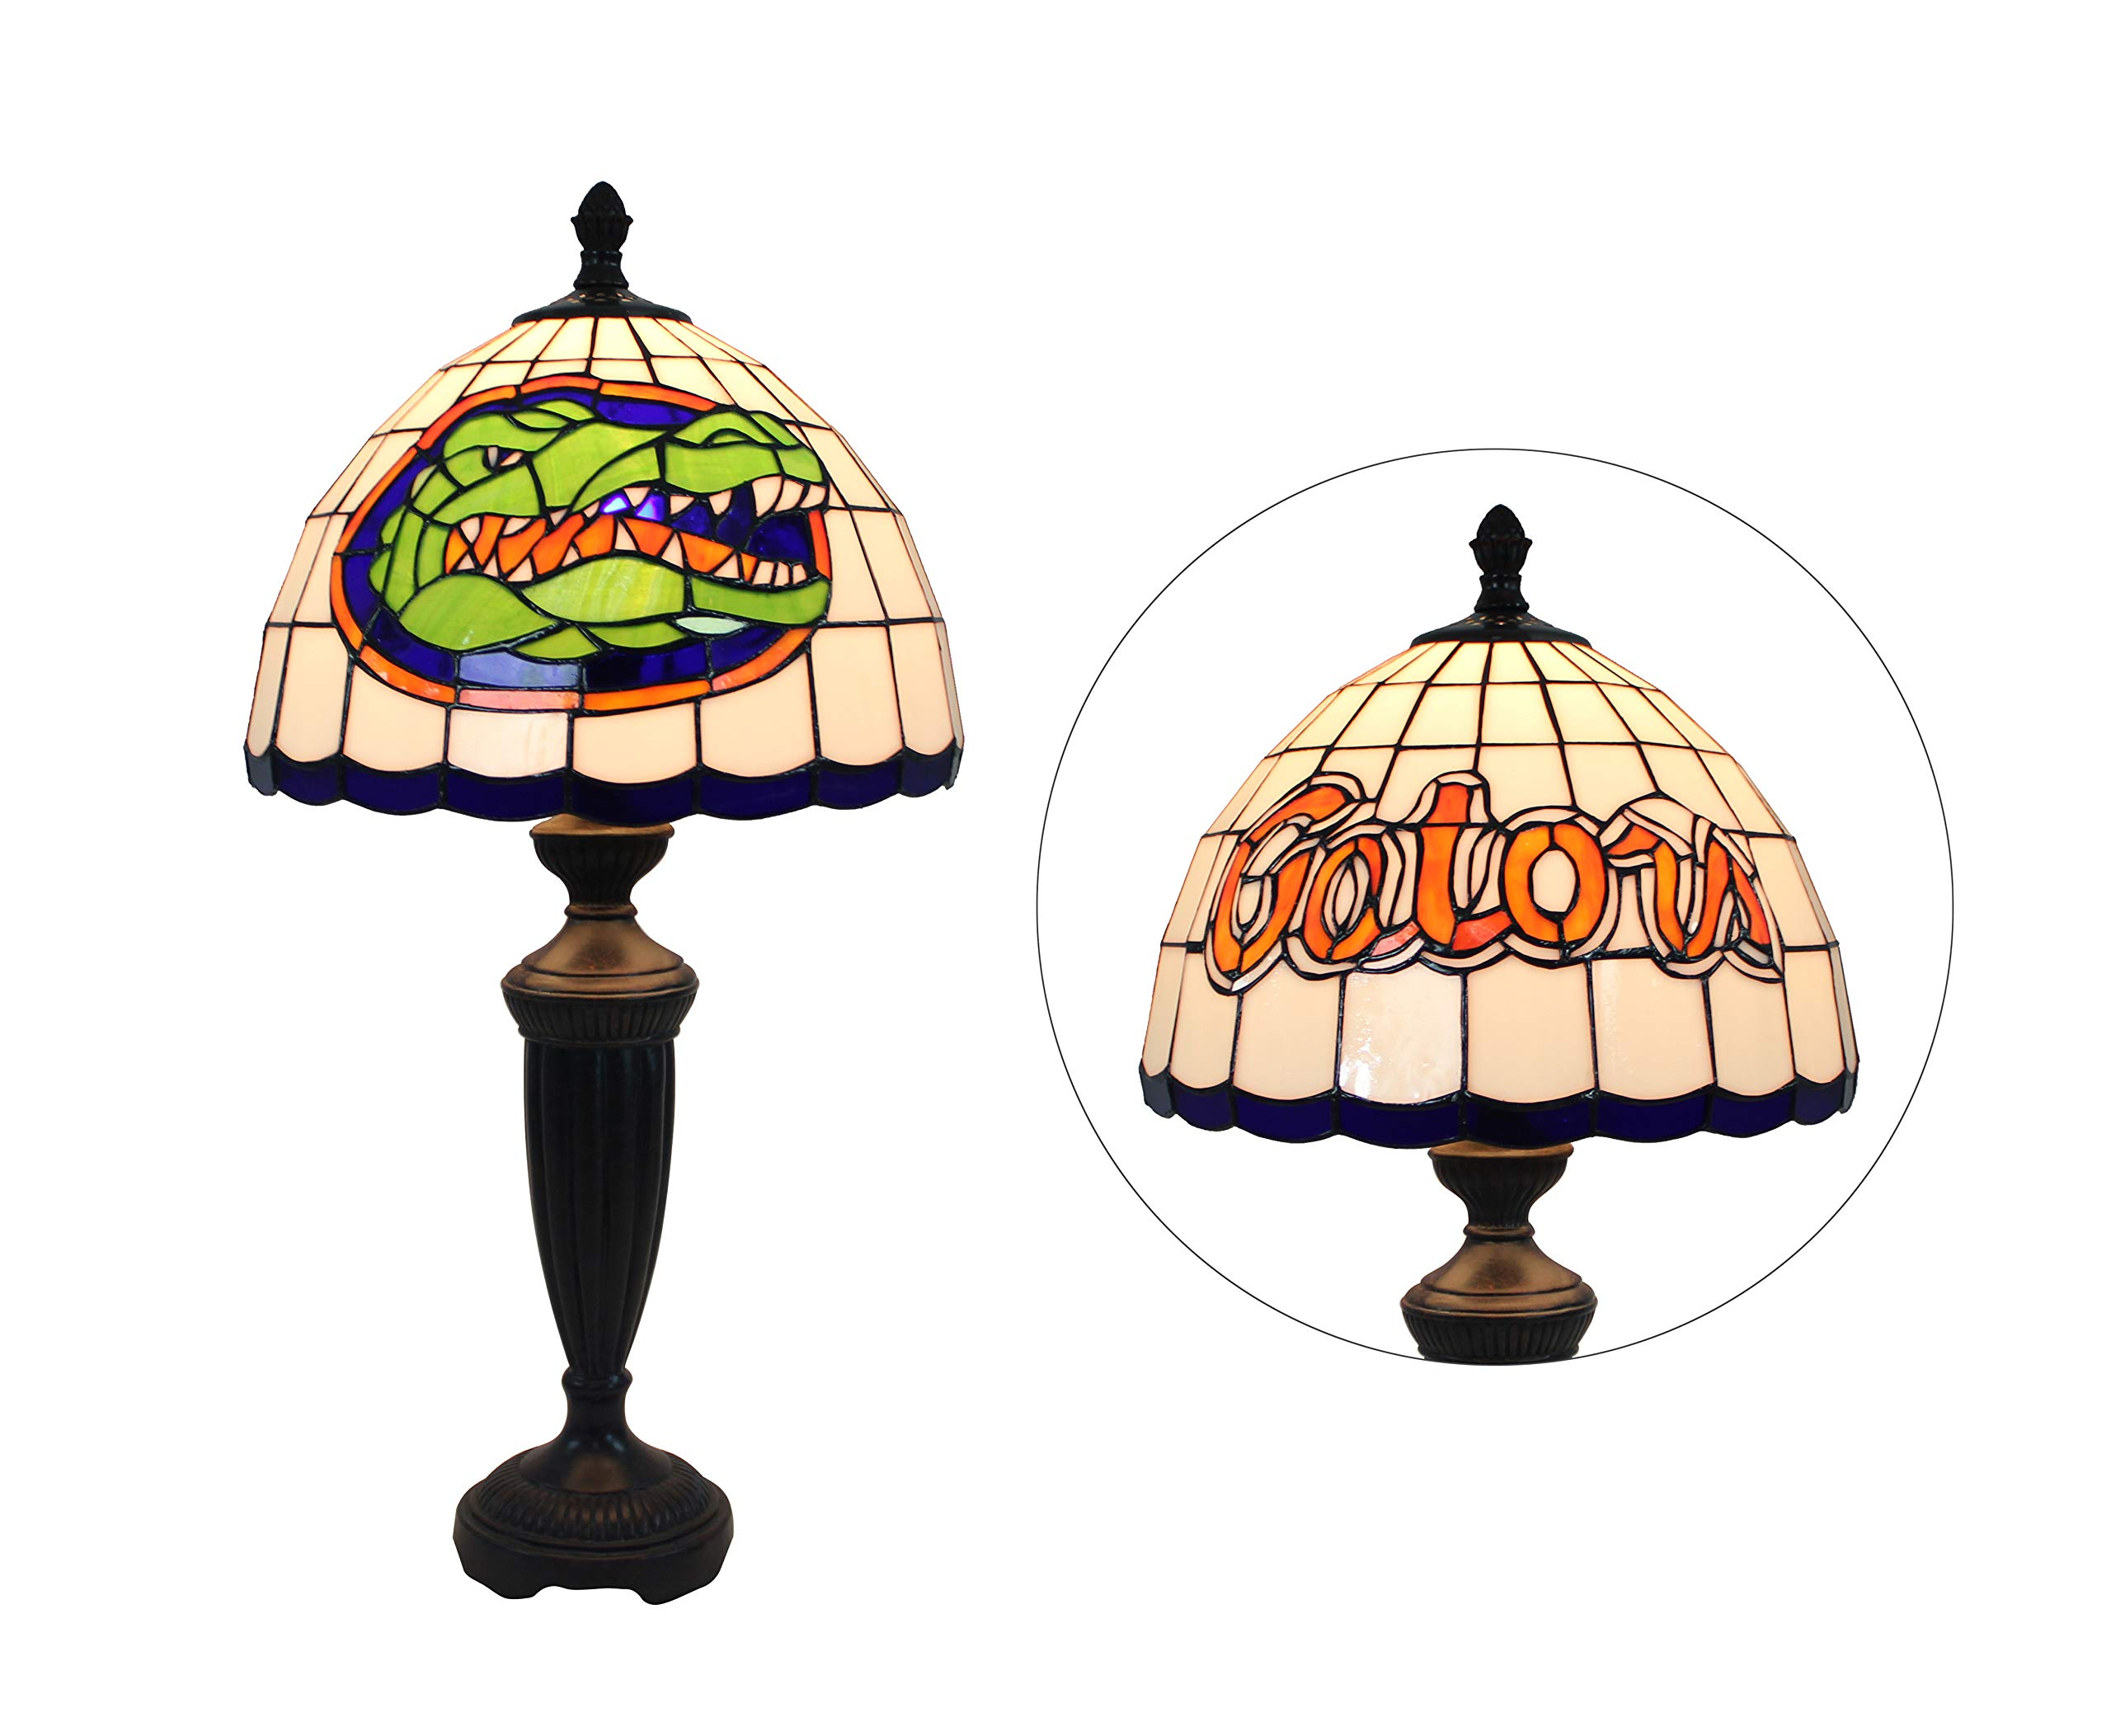 Yolic 12-inch NCAA Florida Gators Stained Glass Table Lamp 24.8-inch Total Height